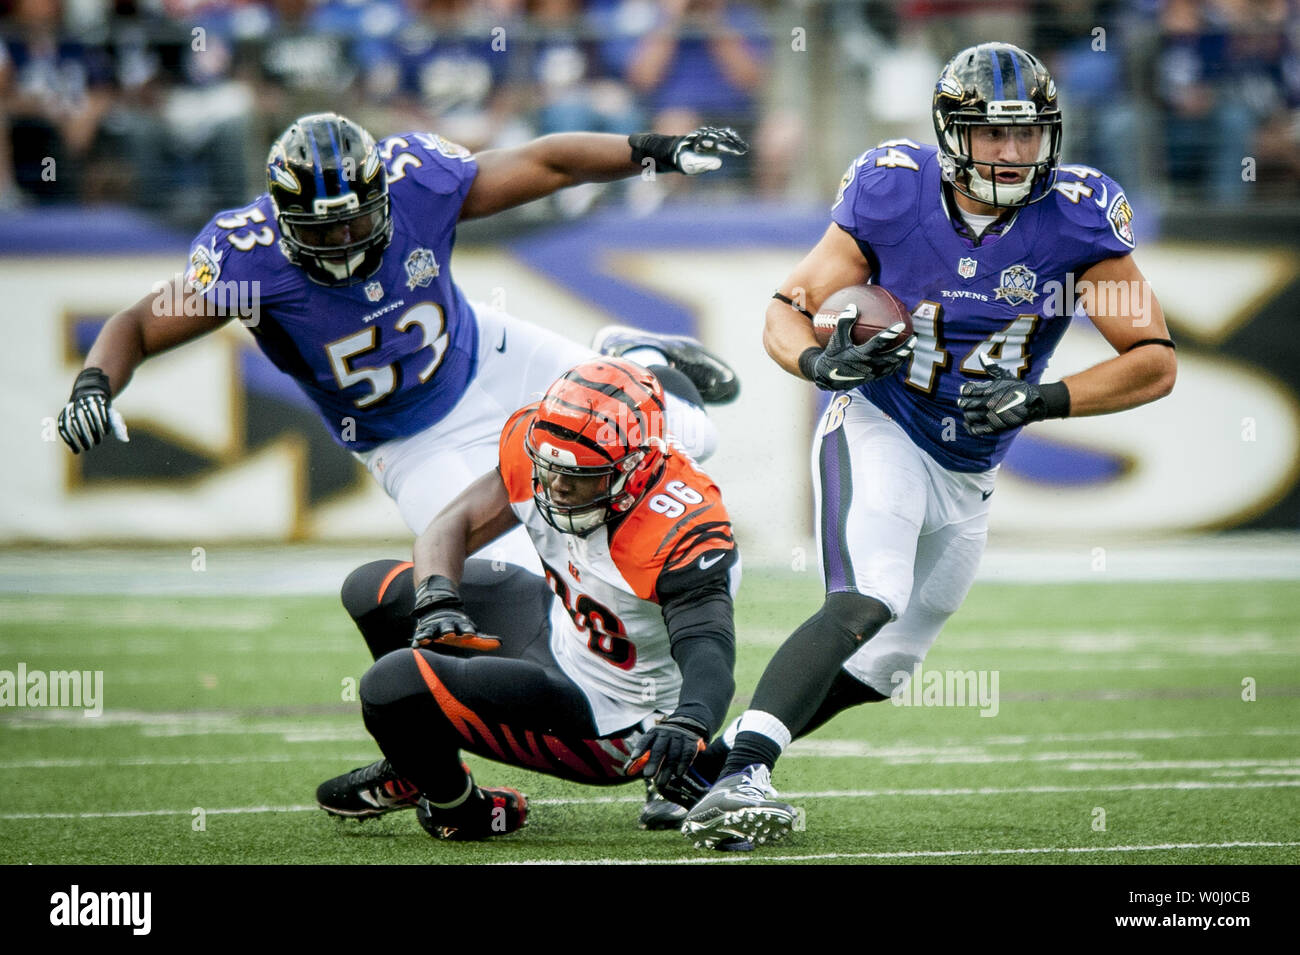 Baltimore Raven fullback Kyle Juszczyk breaks a tackle during the third  quarter against the Cincinatti Bengals